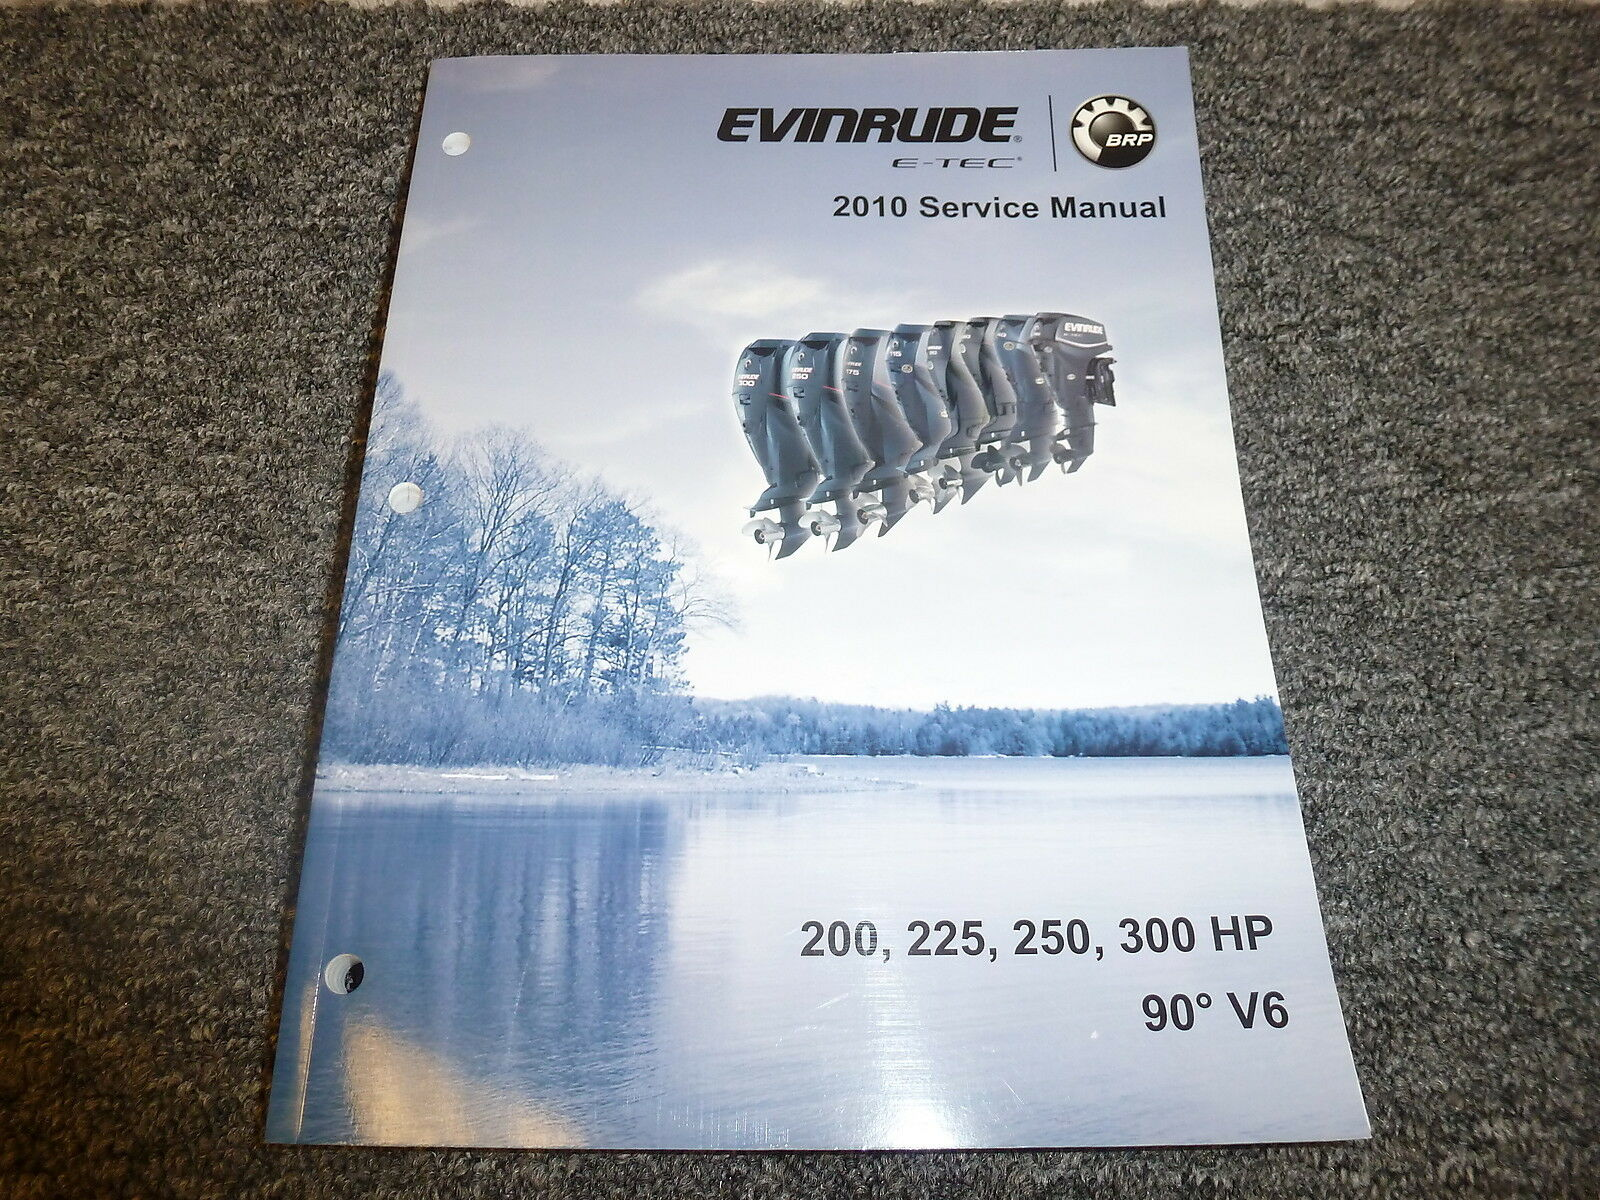 2010 Evinrude 200 225 250 300 HP 90 V6 E-TEC Shop Service Repair Manual 1  of 1Only 1 available ...